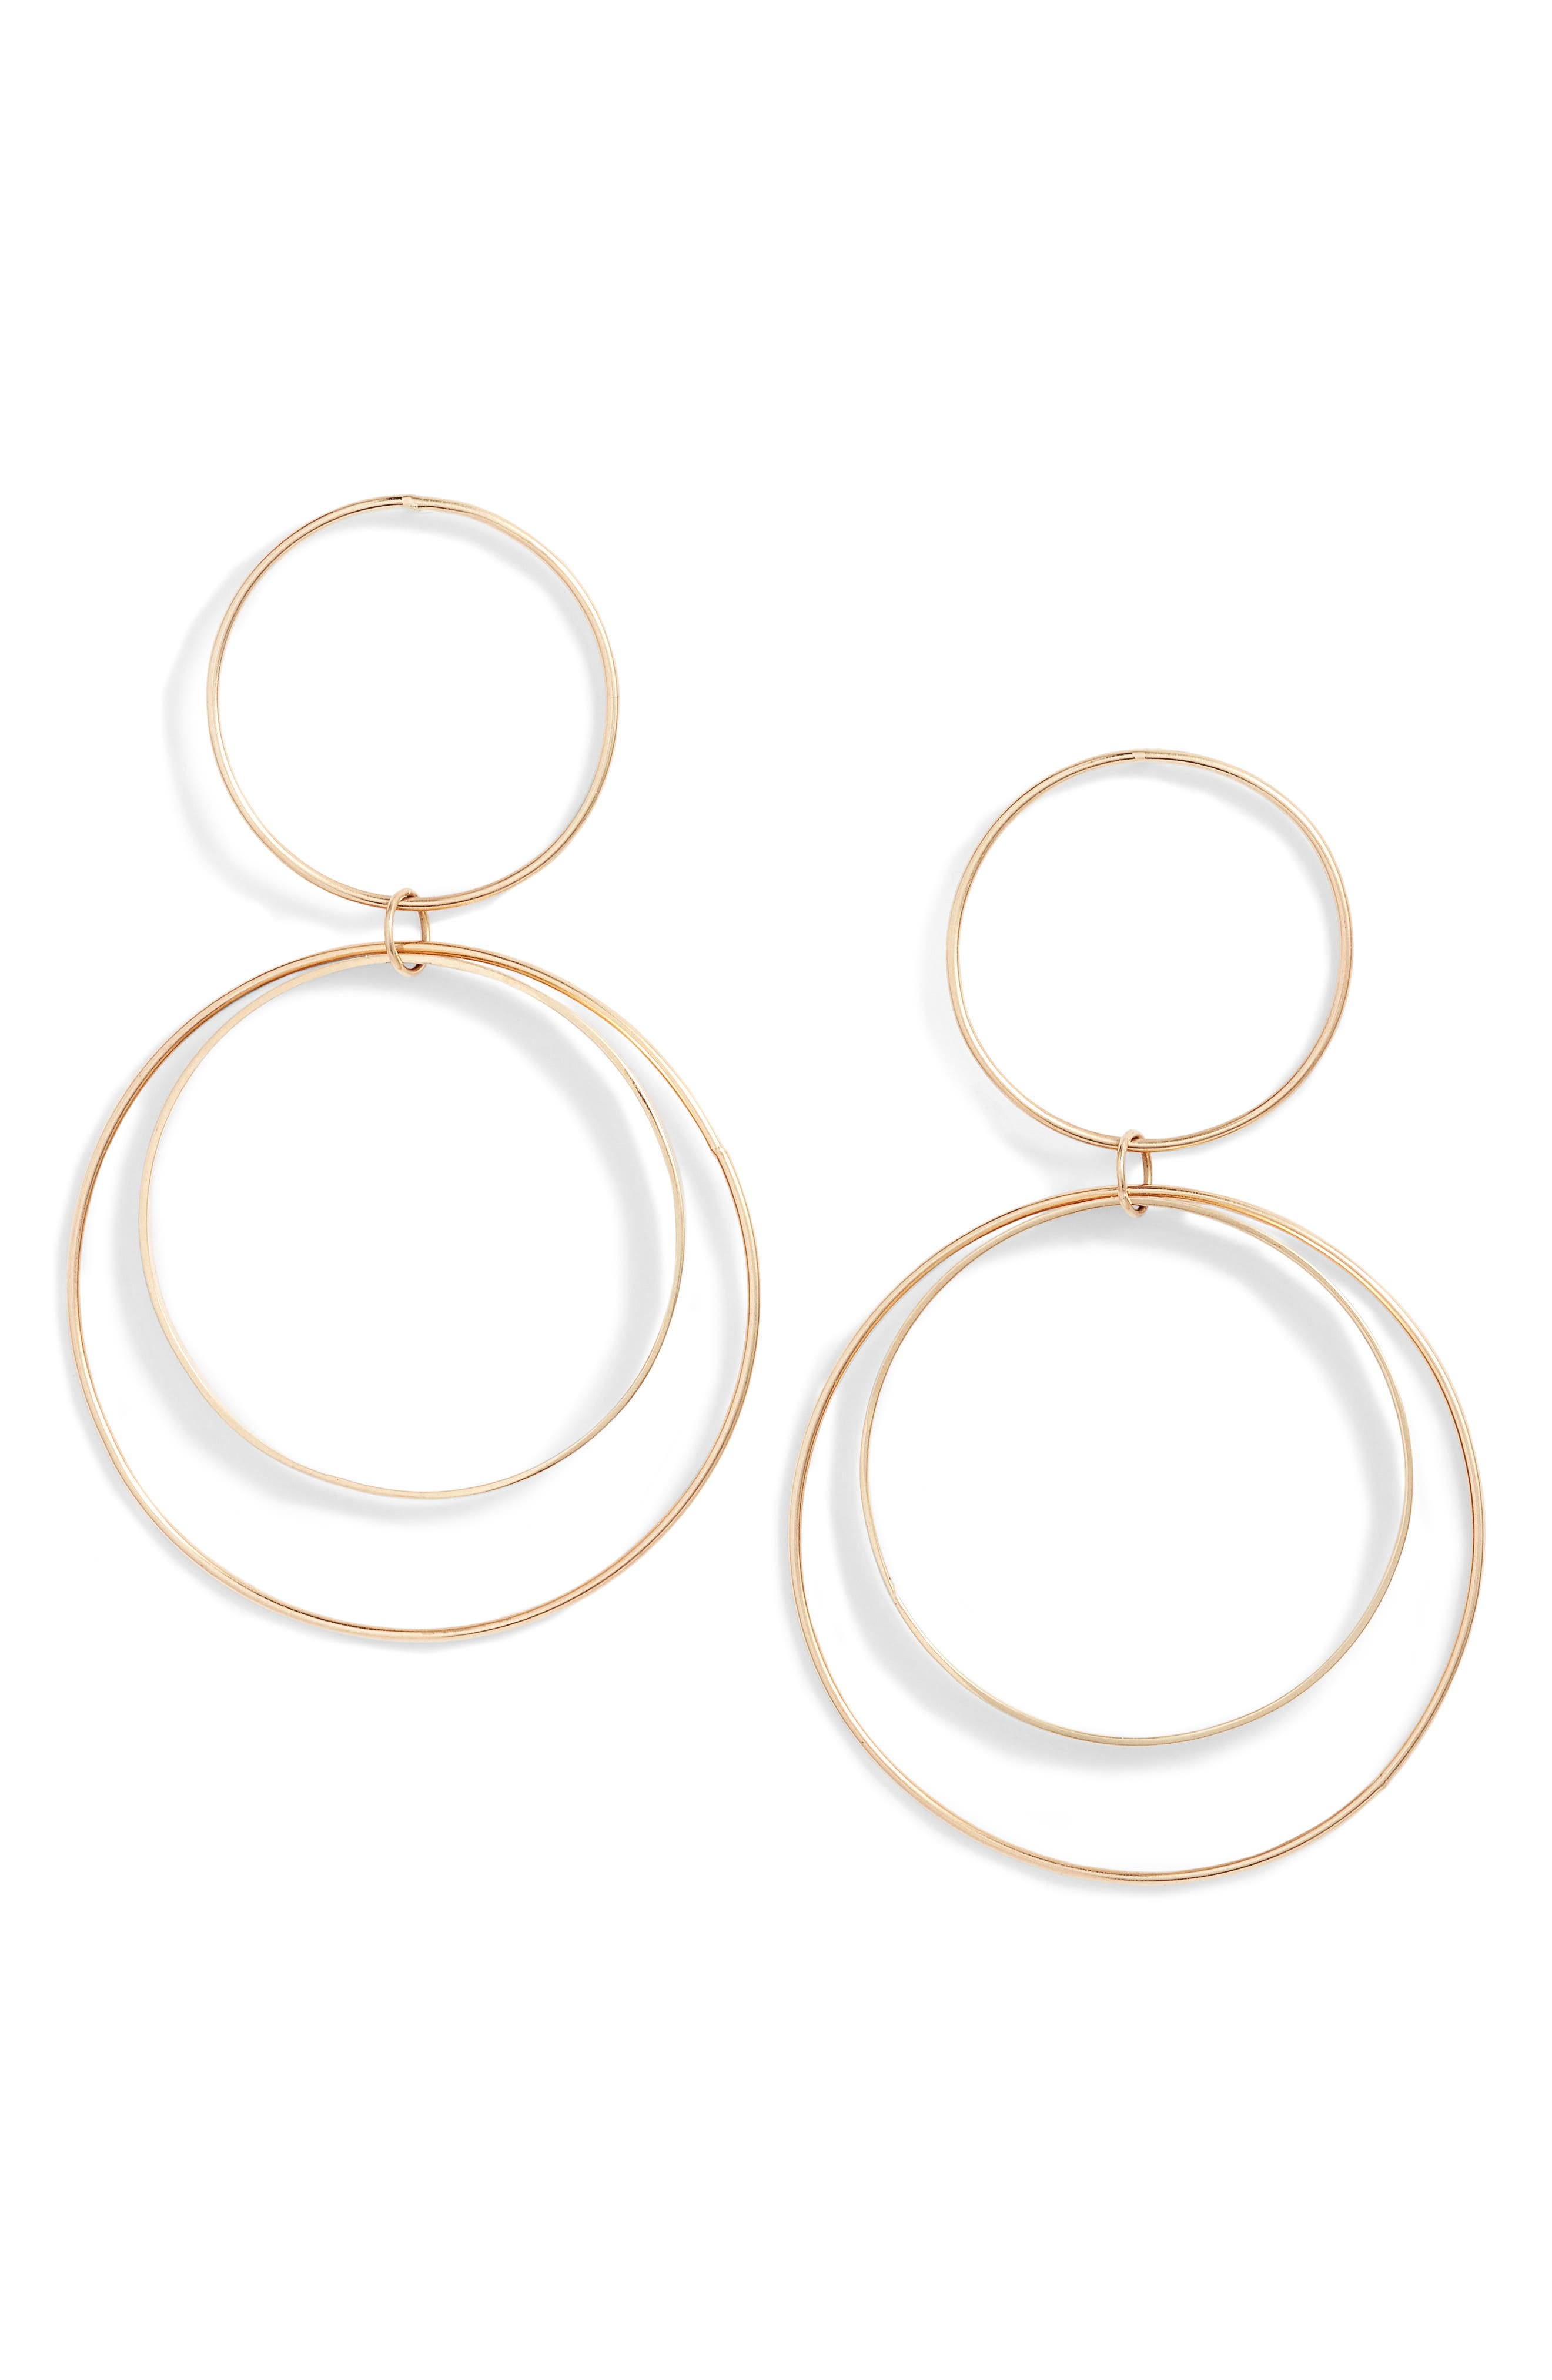 Two Tier Circle Drop Earrings,                             Main thumbnail 1, color,                             Yellow Gold